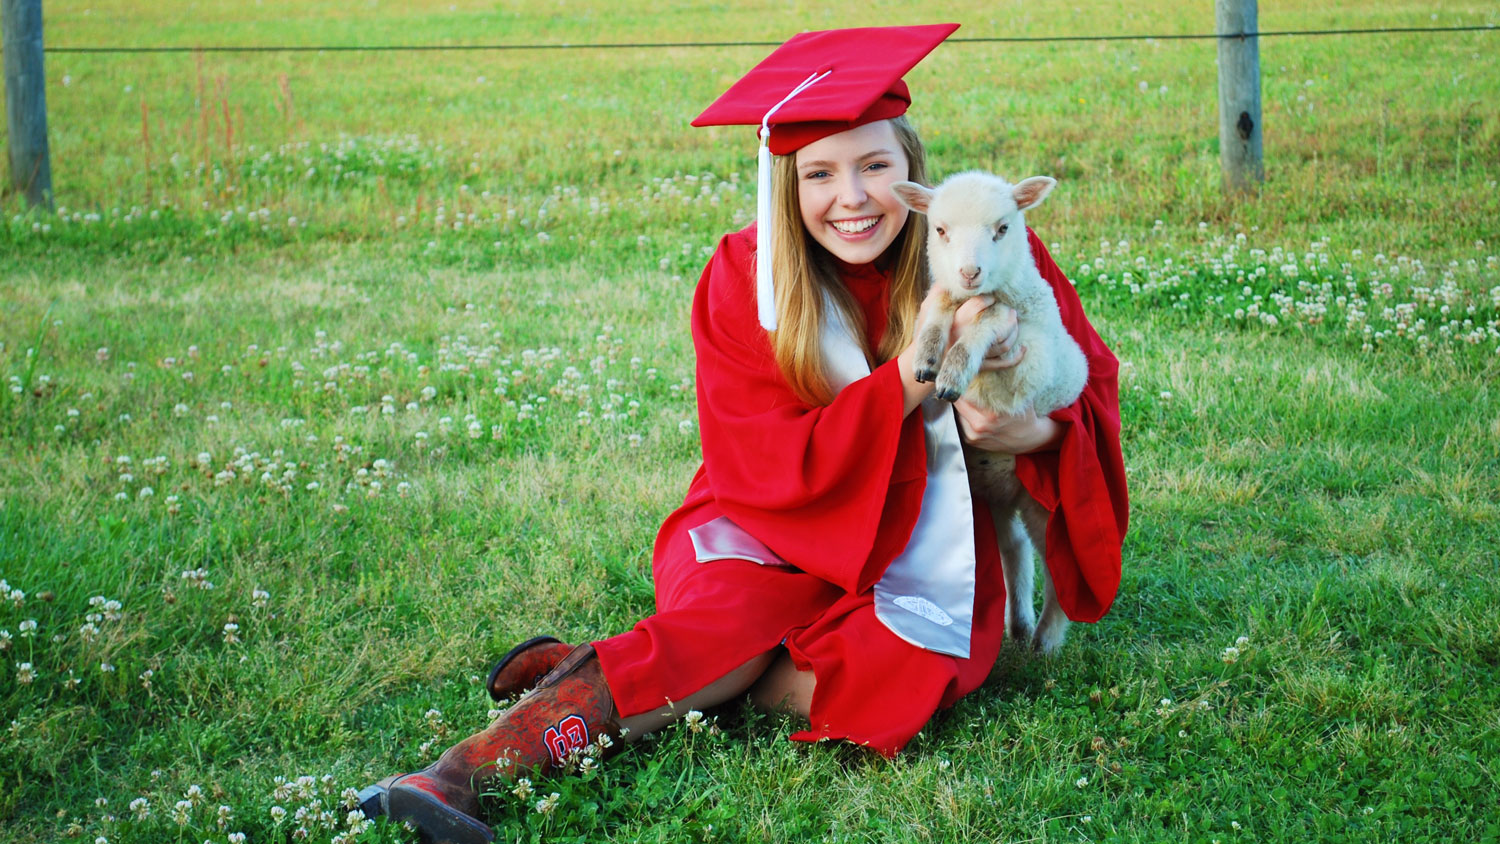 Young woman in a red cap and gown holding a goat